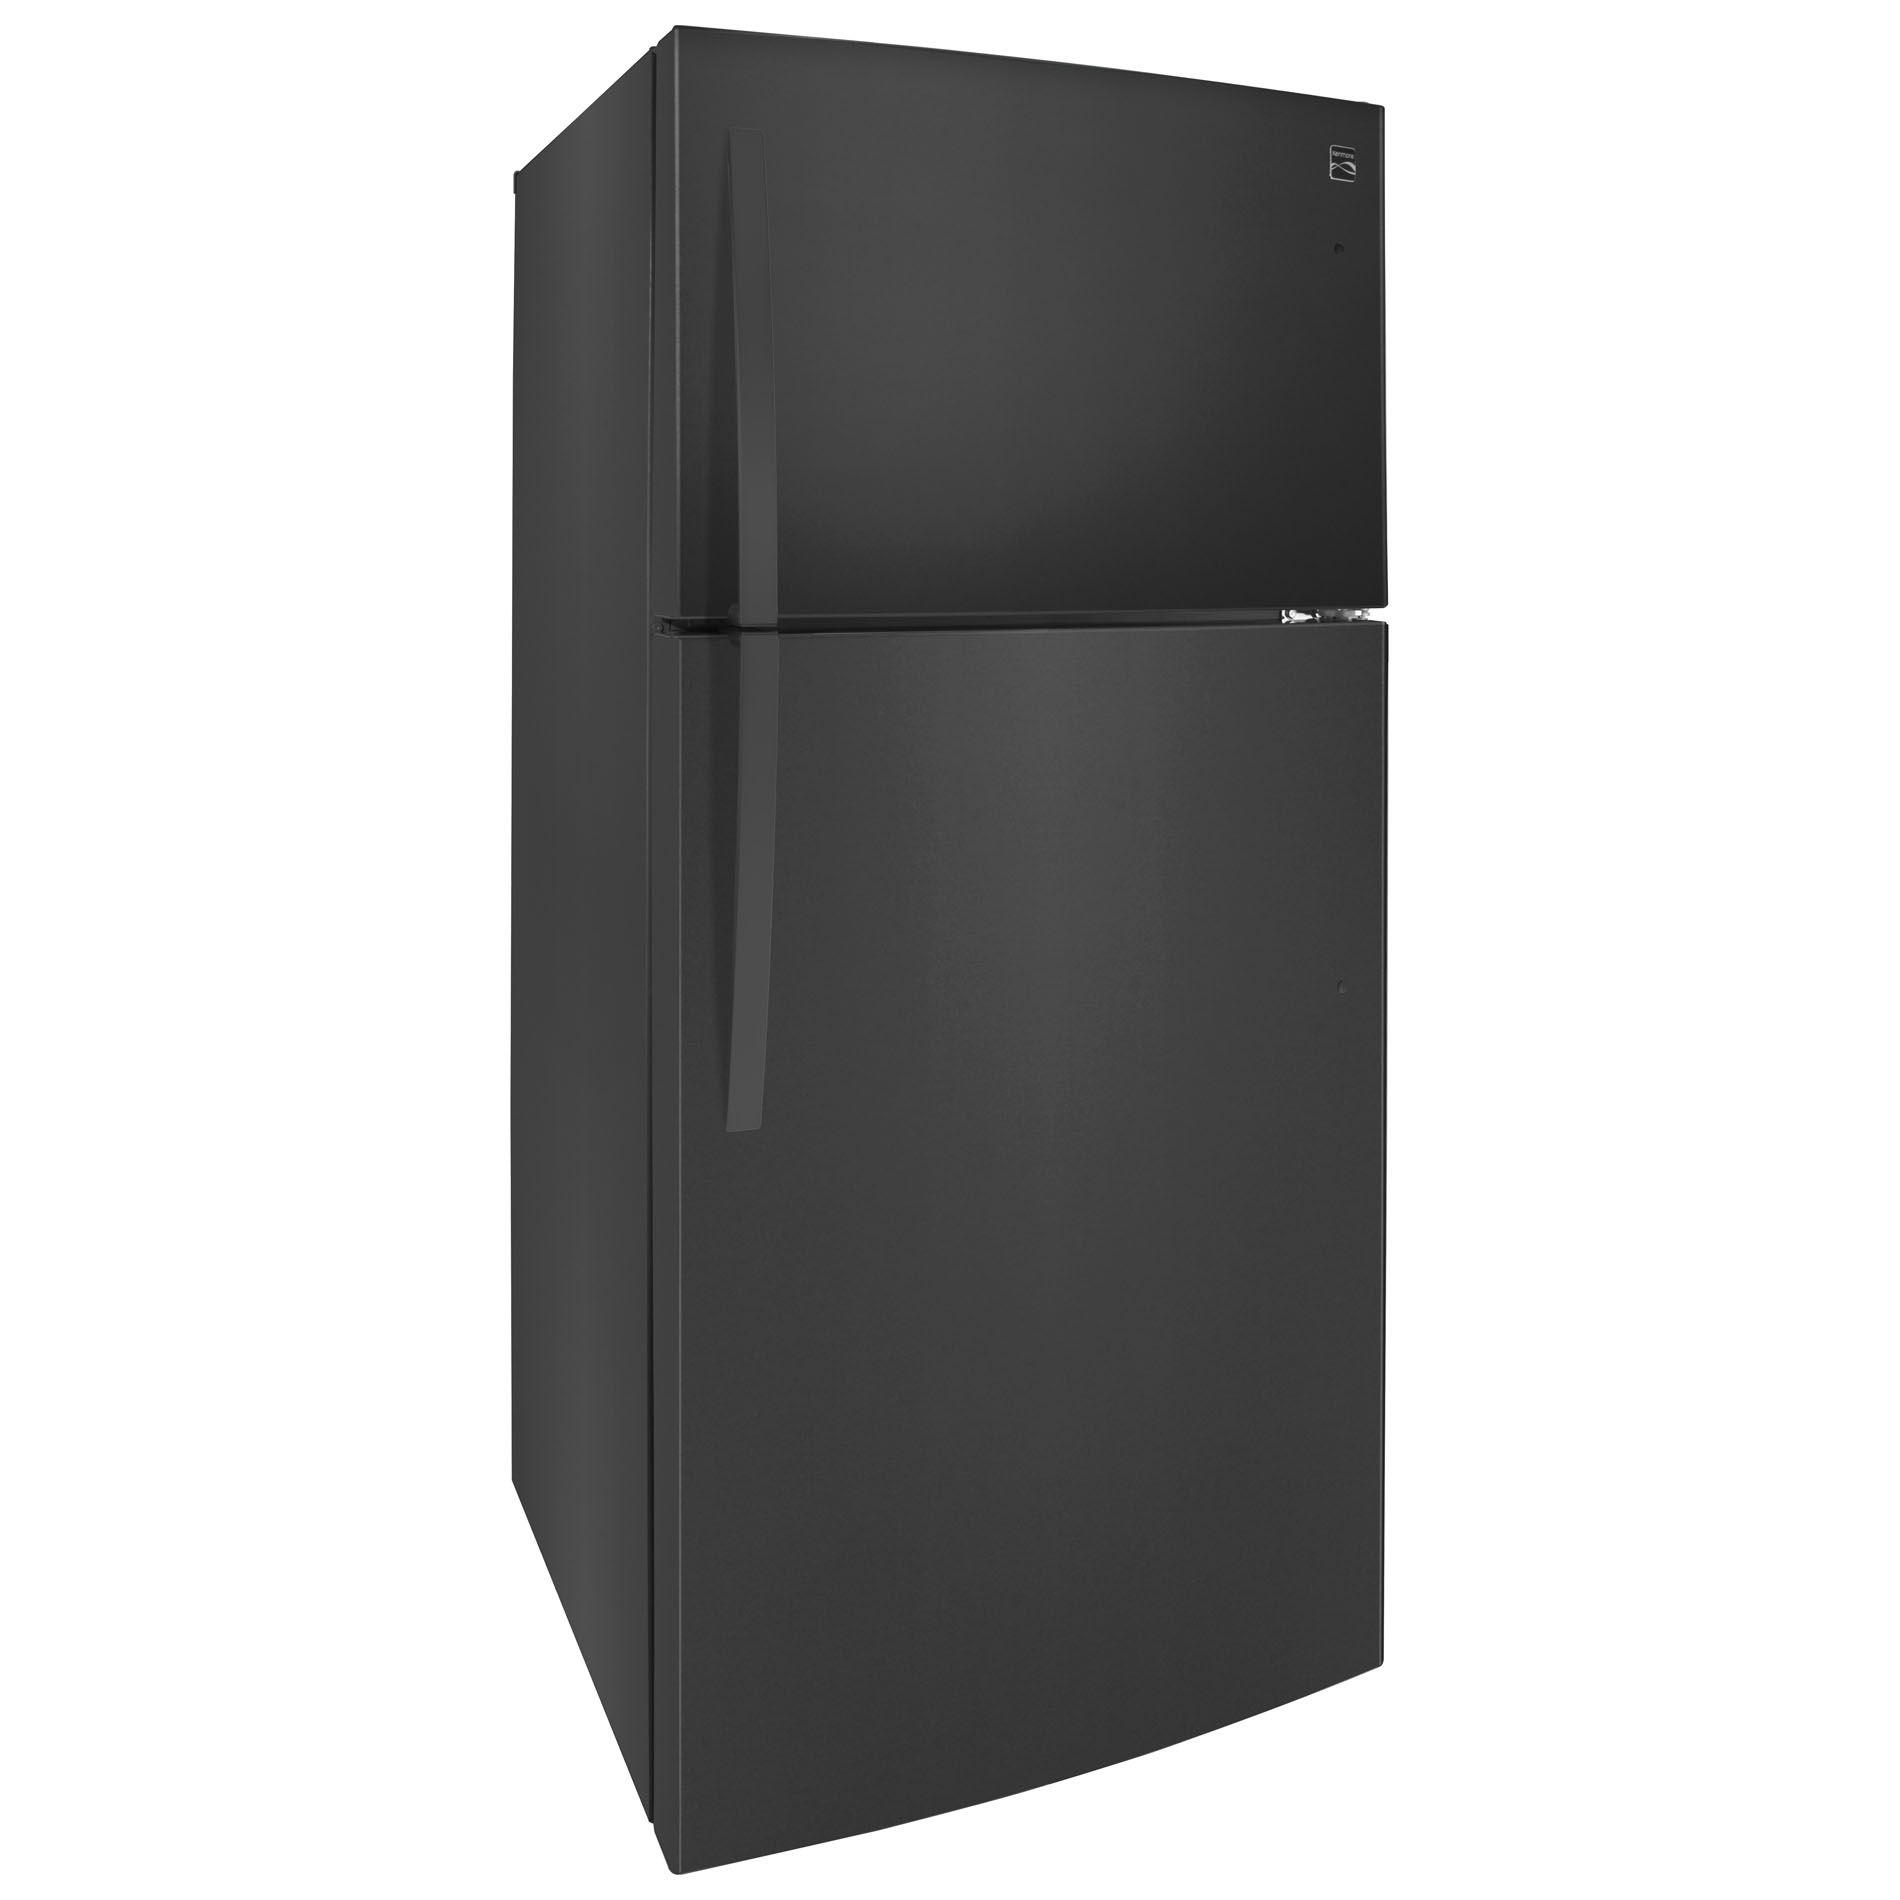 Kenmore 24 cu. ft. Top-Freezer Refrigerator w/ Icemaker - Black